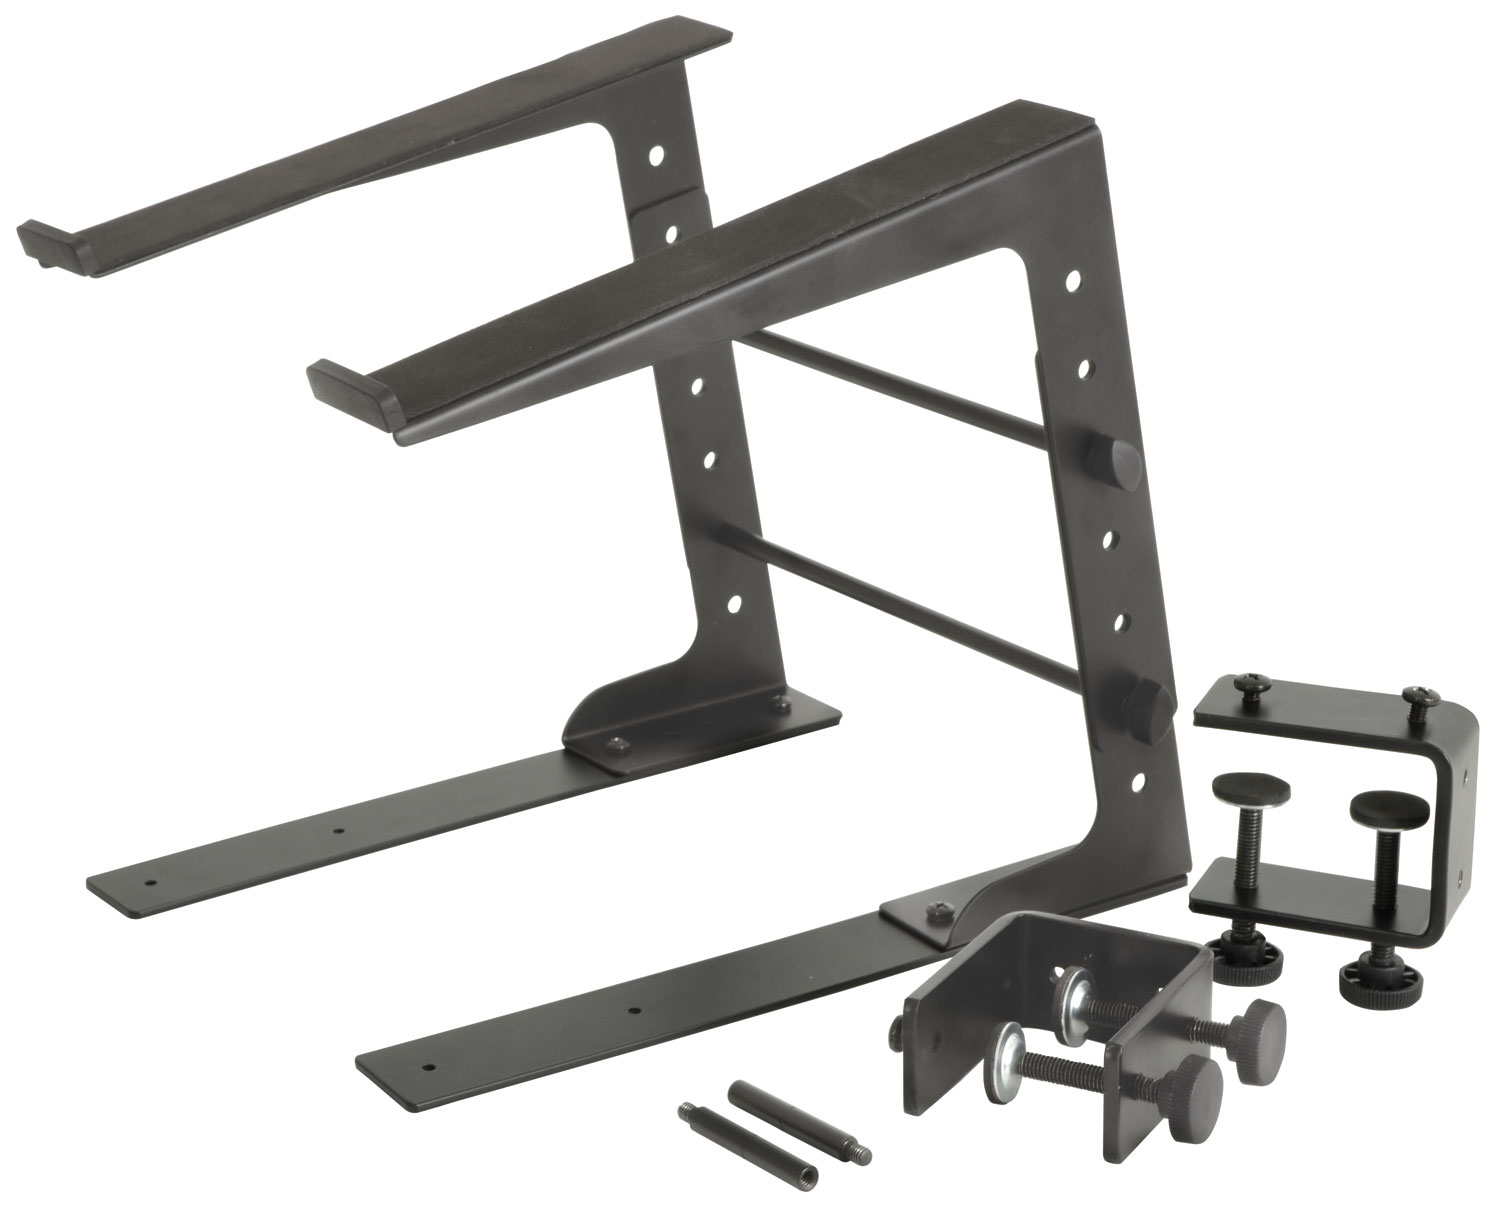 Compact Laptop Stand (with Desk Clamps)